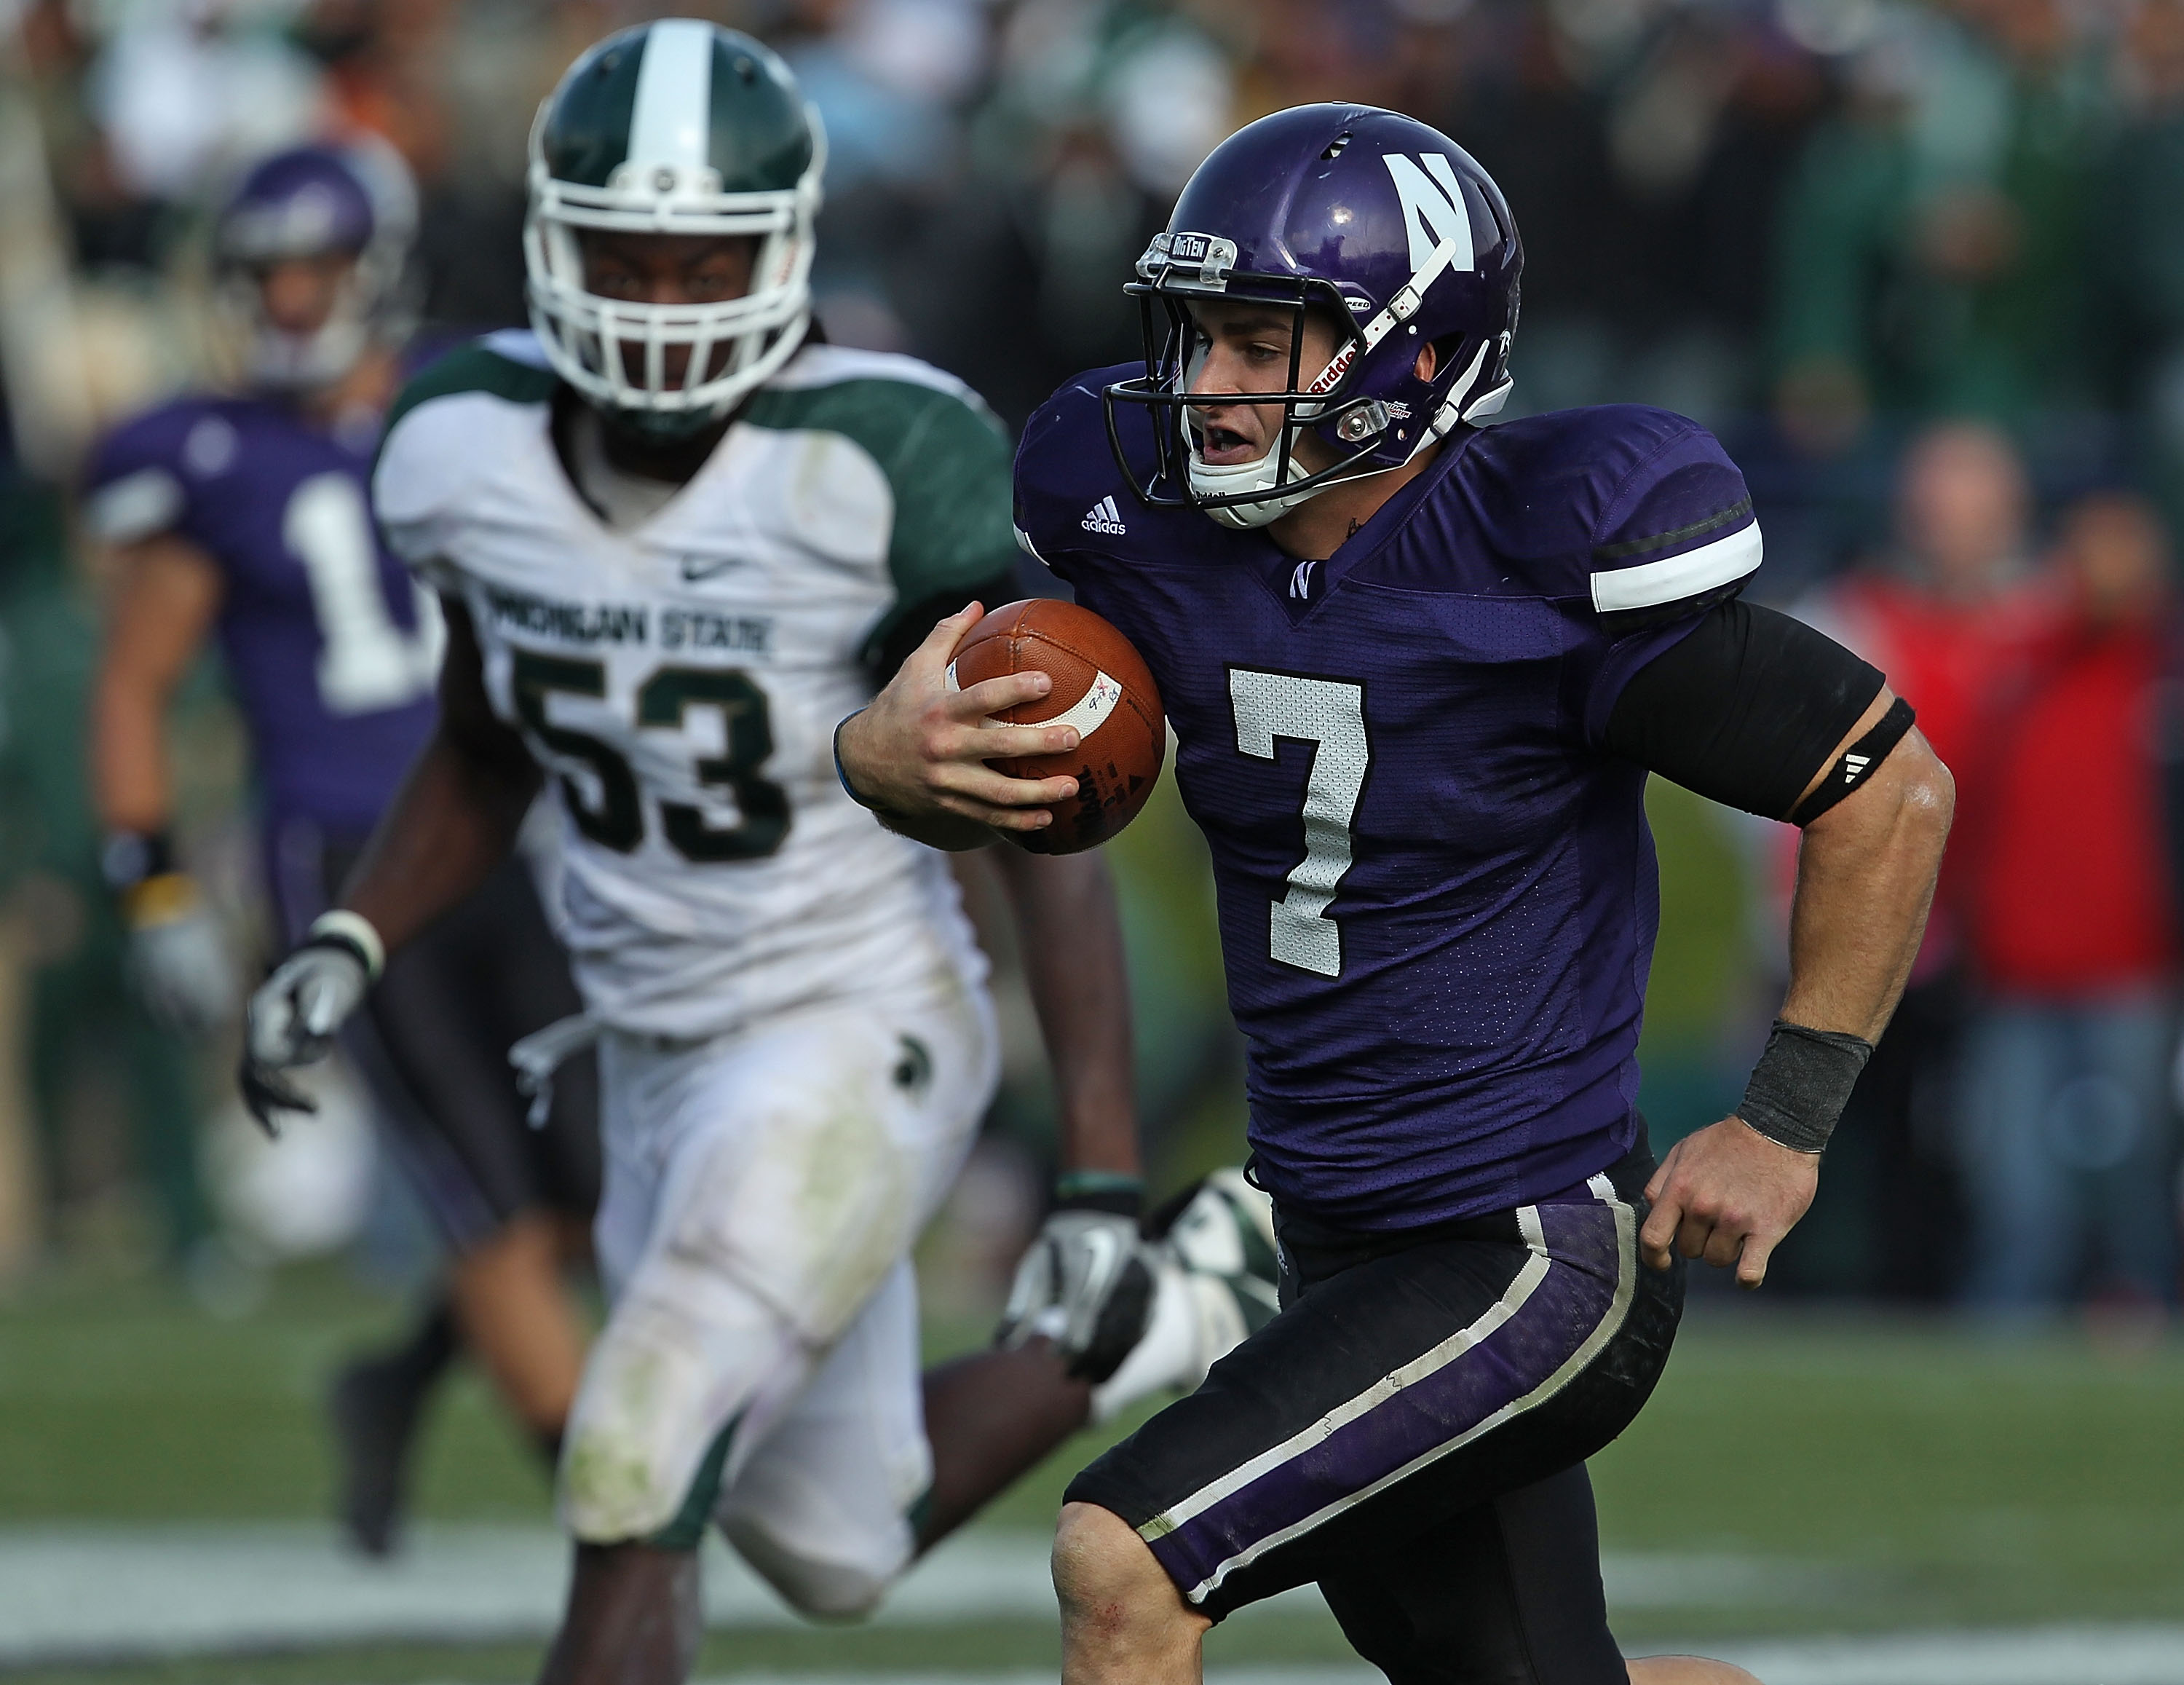 EVANSTON, IL - OCTOBER 23: Dan Persa #7 of the Northwestern Wildcats runs against the Michigan State Spartans pursued by Greg Jones #53 at Ryan Field on October 23, 2010 in Evanston, Illinois. Michigan State defeated Northwestern 35-27.  (Photo by Jonatha